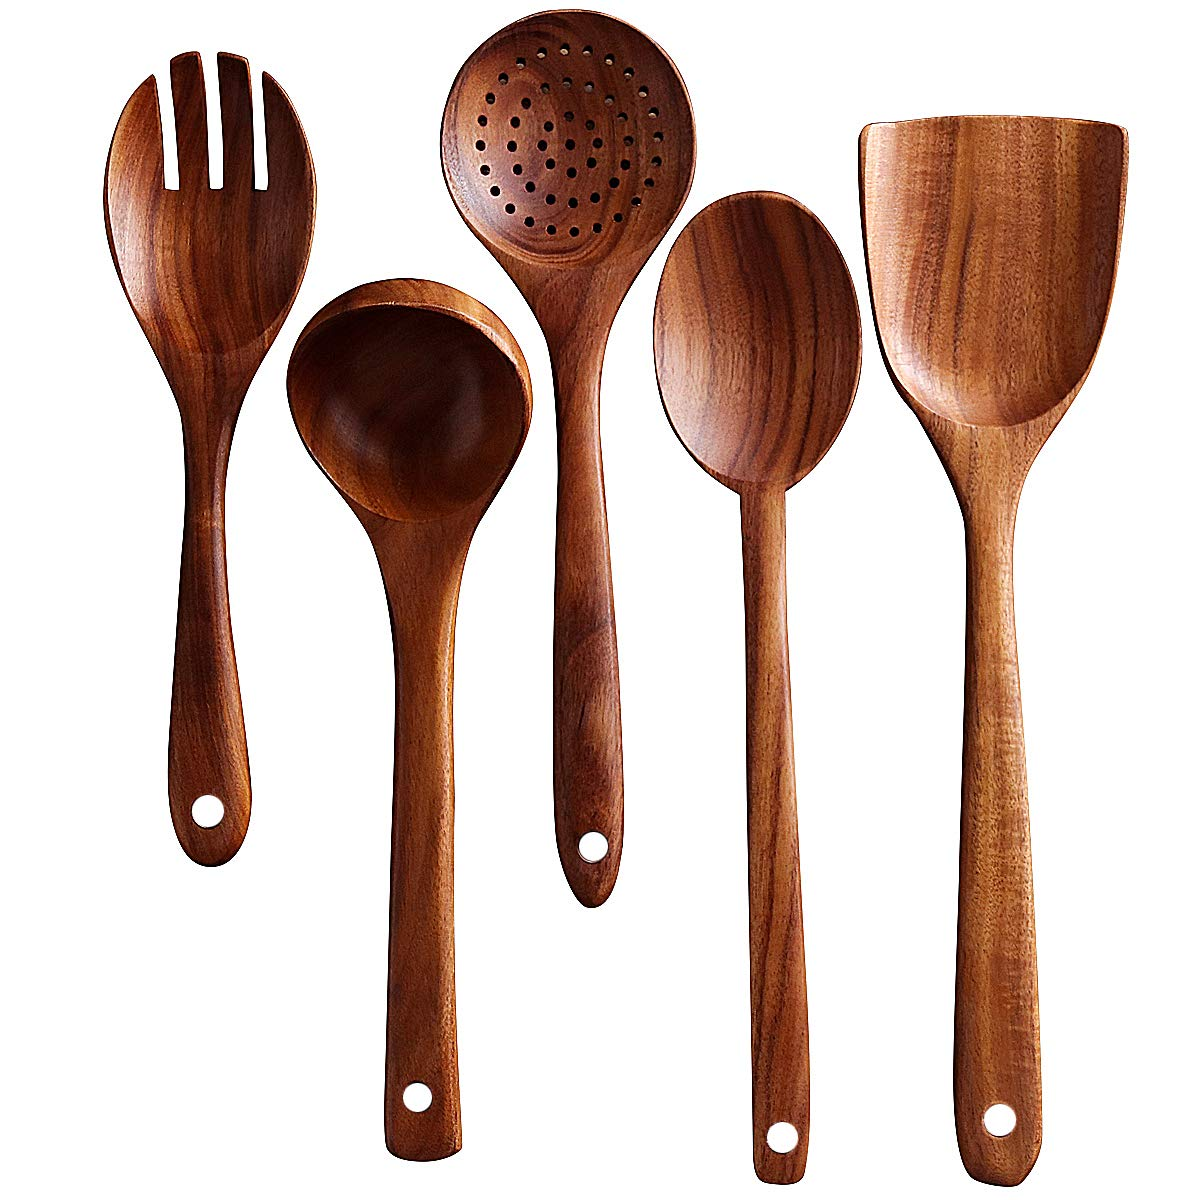 Wooden Kitchen Utensils Set Wood Spoons For Cooking Wooden Spatula Wooden Salad Fork Cooking Spoons 5 Set